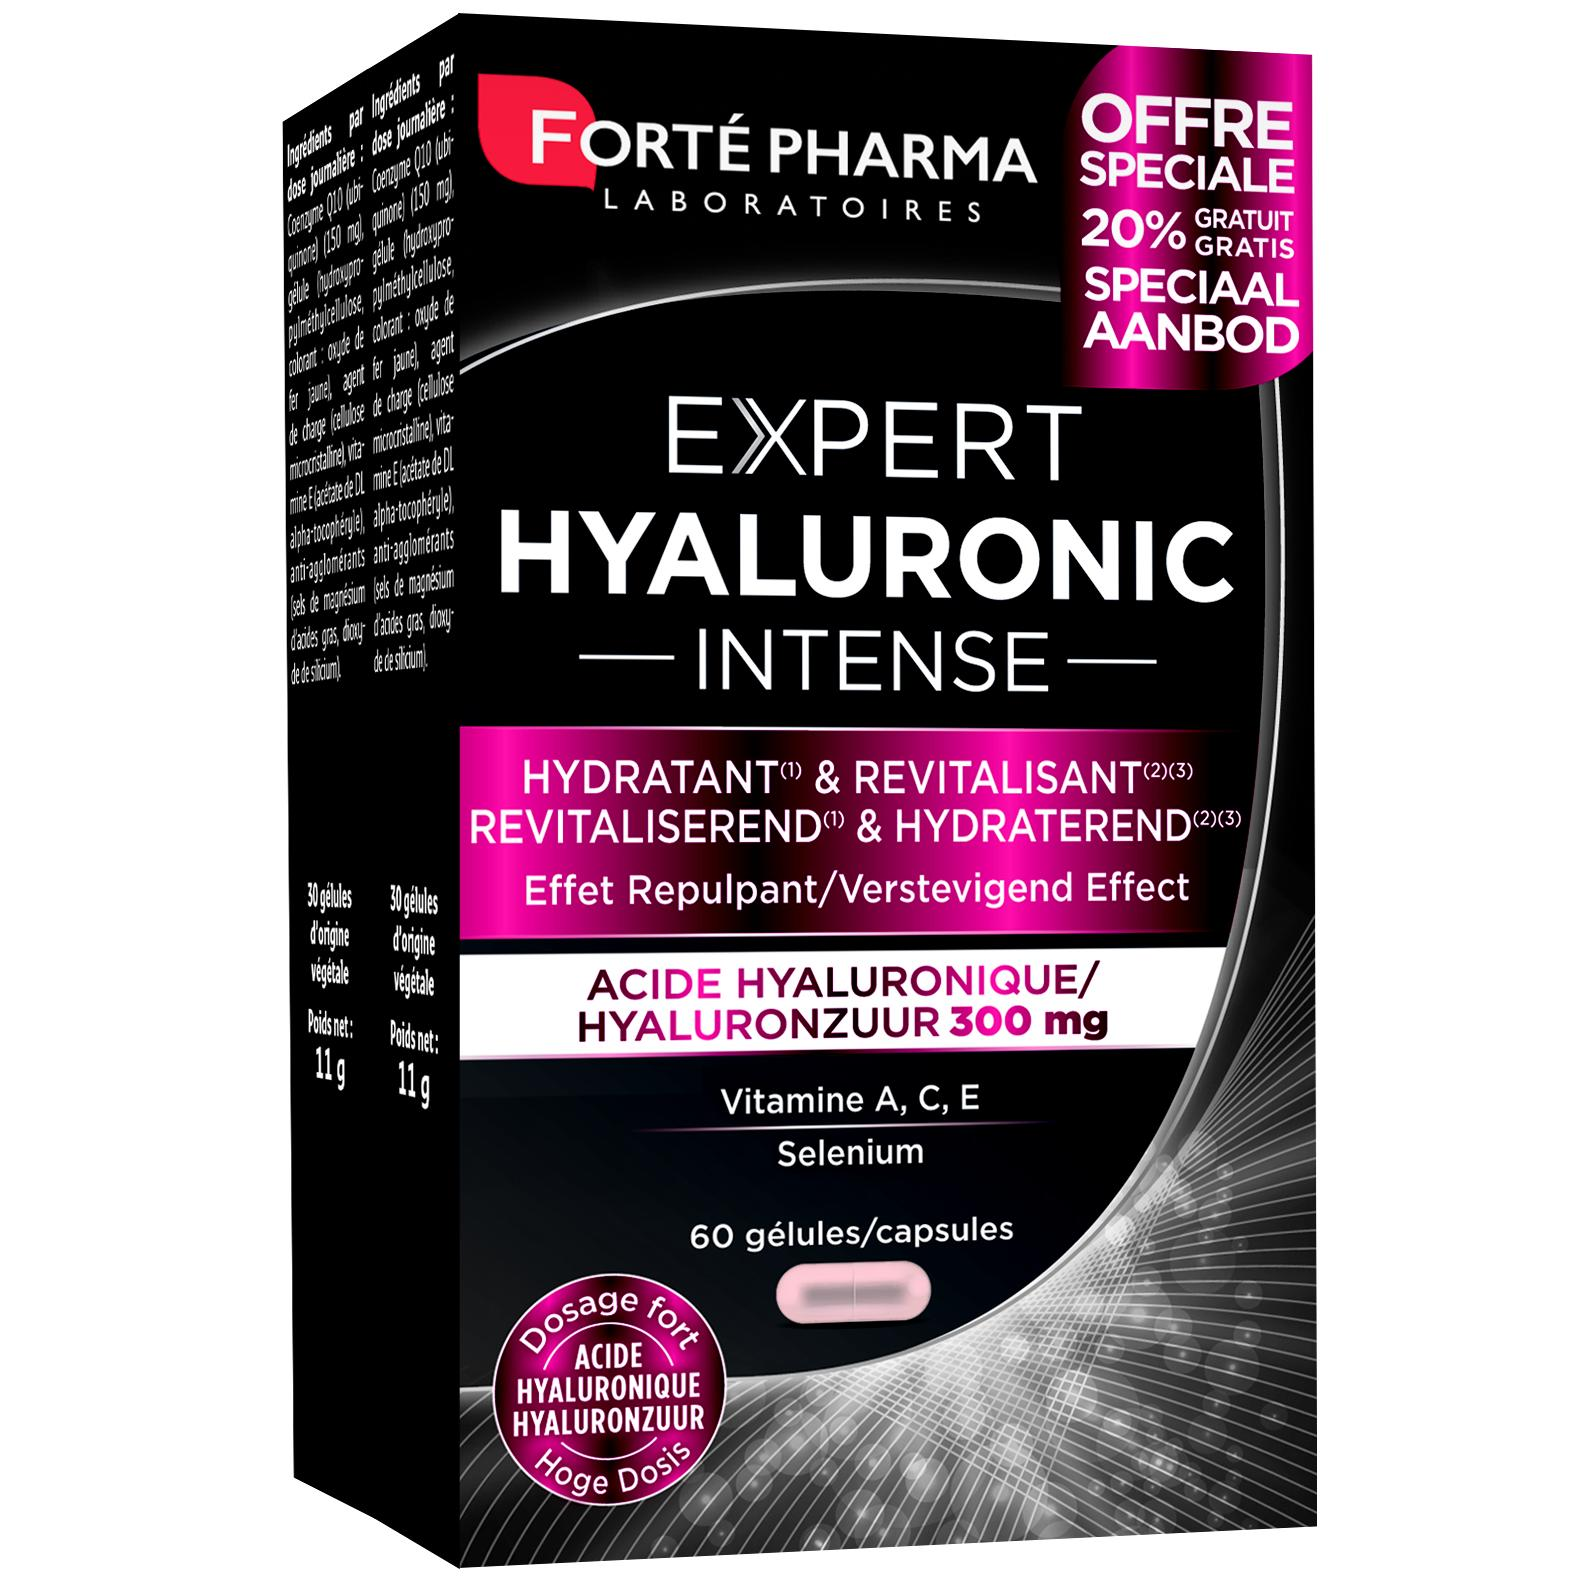 Image of EXPERT HYALURONIC INTENSE DUO